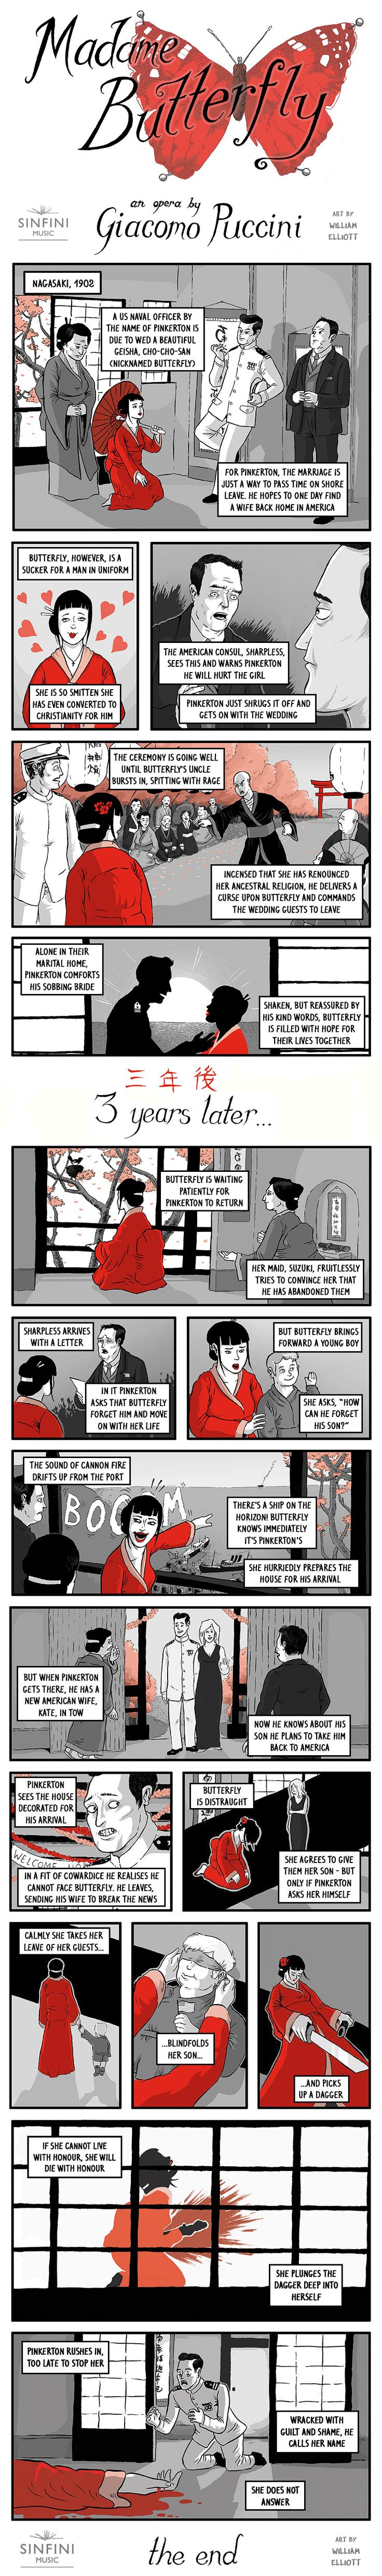 This is not a music tech resource as such, but free and highly useful!  There are a few opera strips to see - each one explains an opera synopsis clearly and succinctly.  Excellent for students